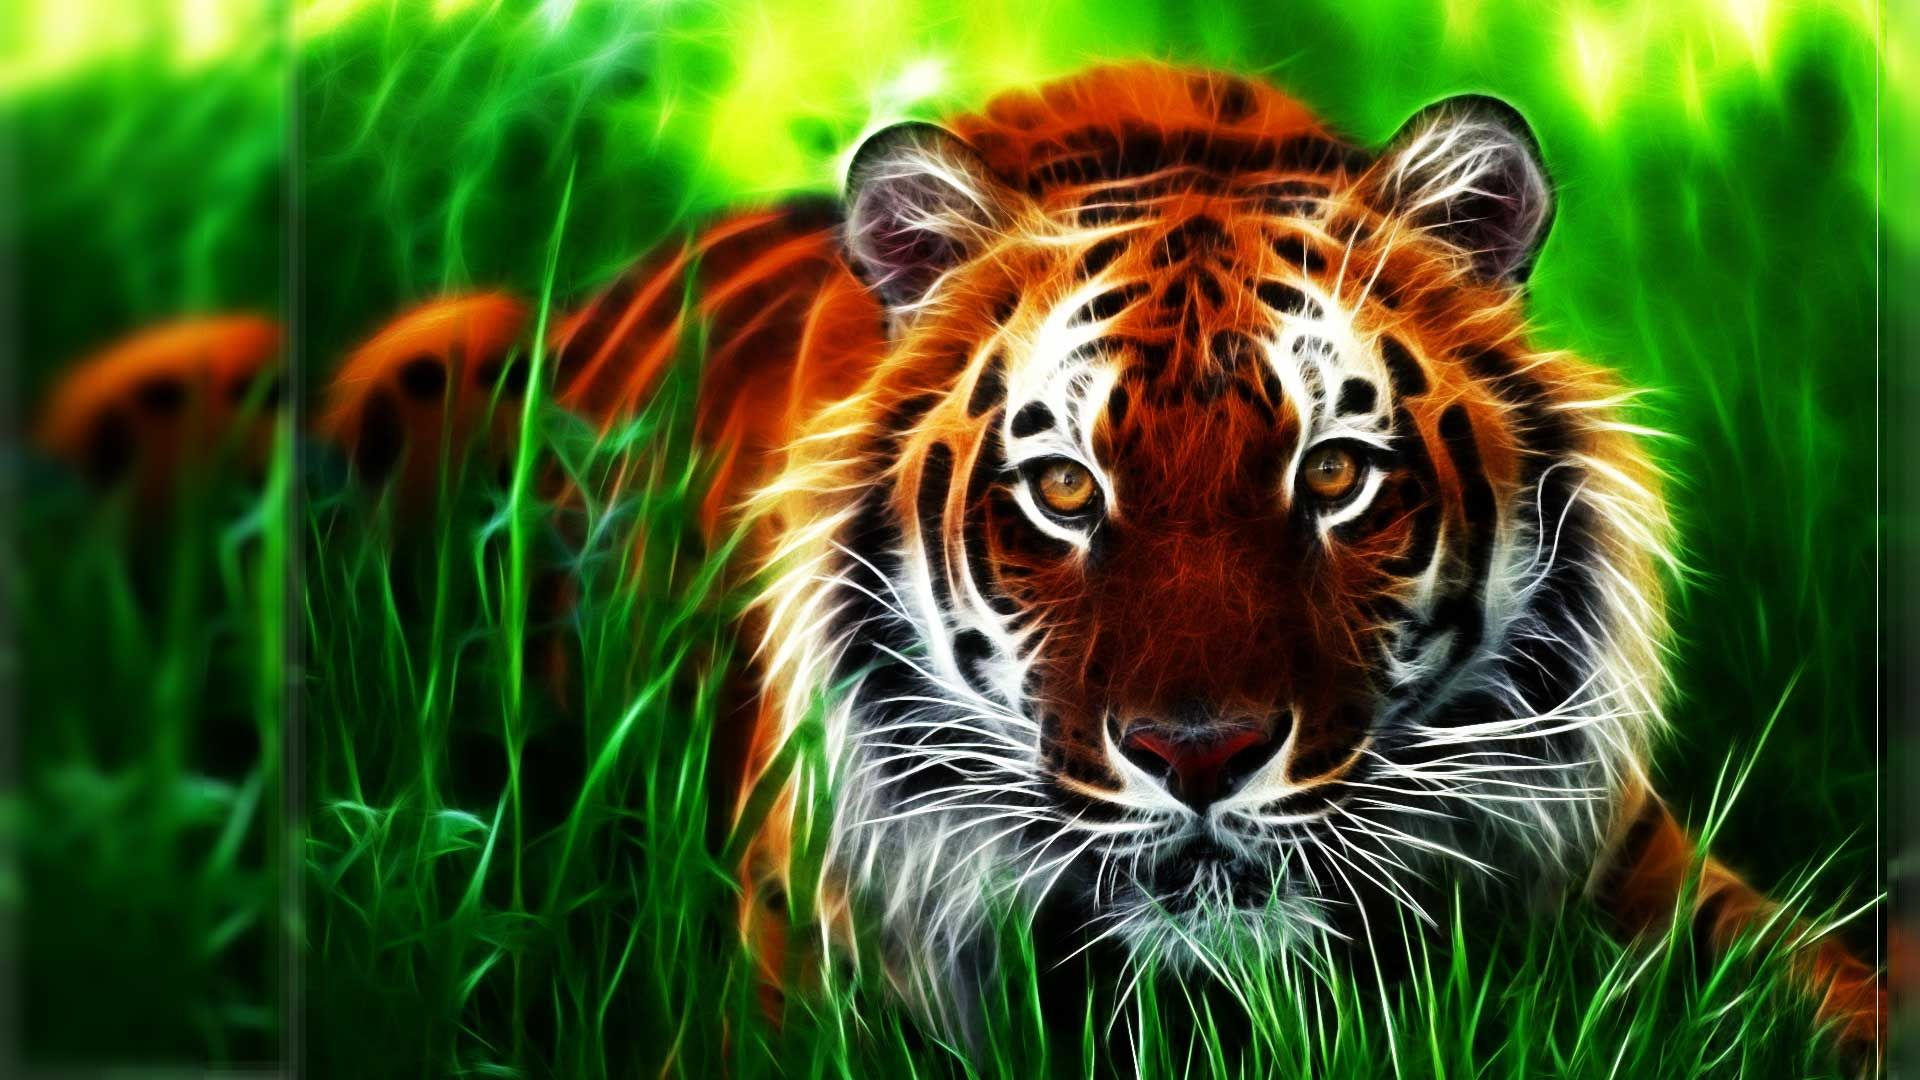 Wallpapers Hd For Desktop Free Download Group Tiger Wallpaper Tiger Pictures Moving Wallpapers